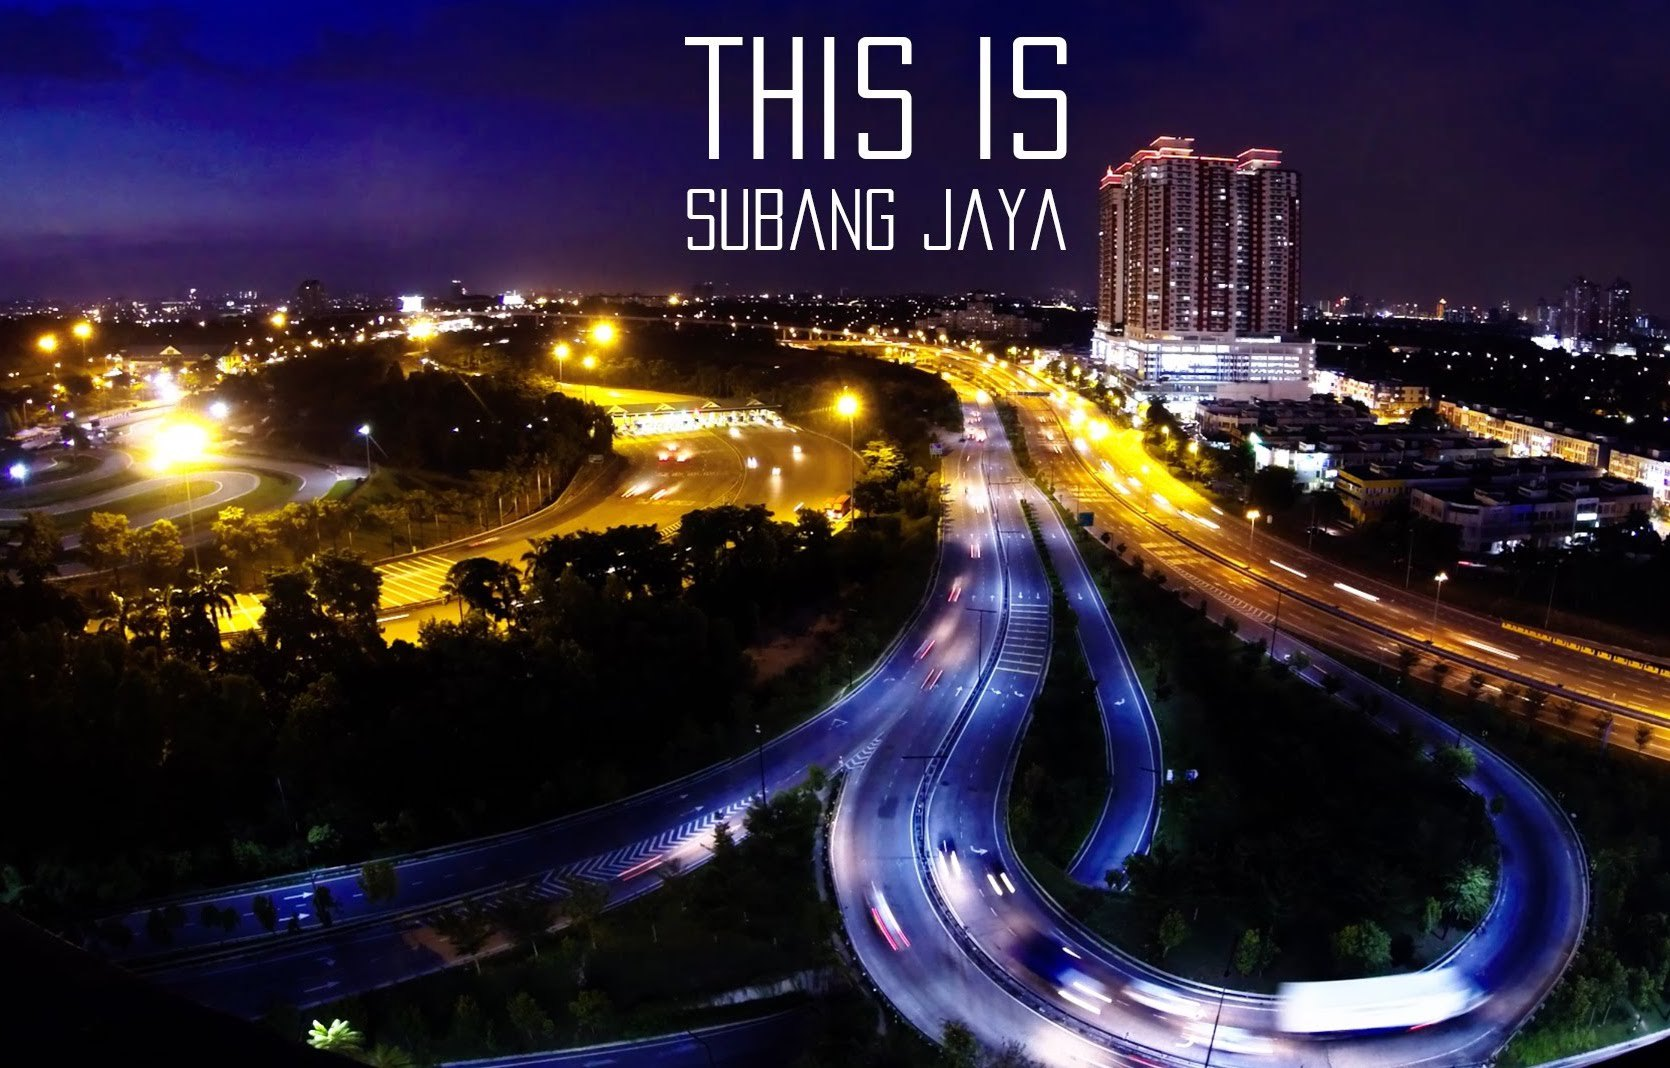 House for sales top 40 properties subang jaya